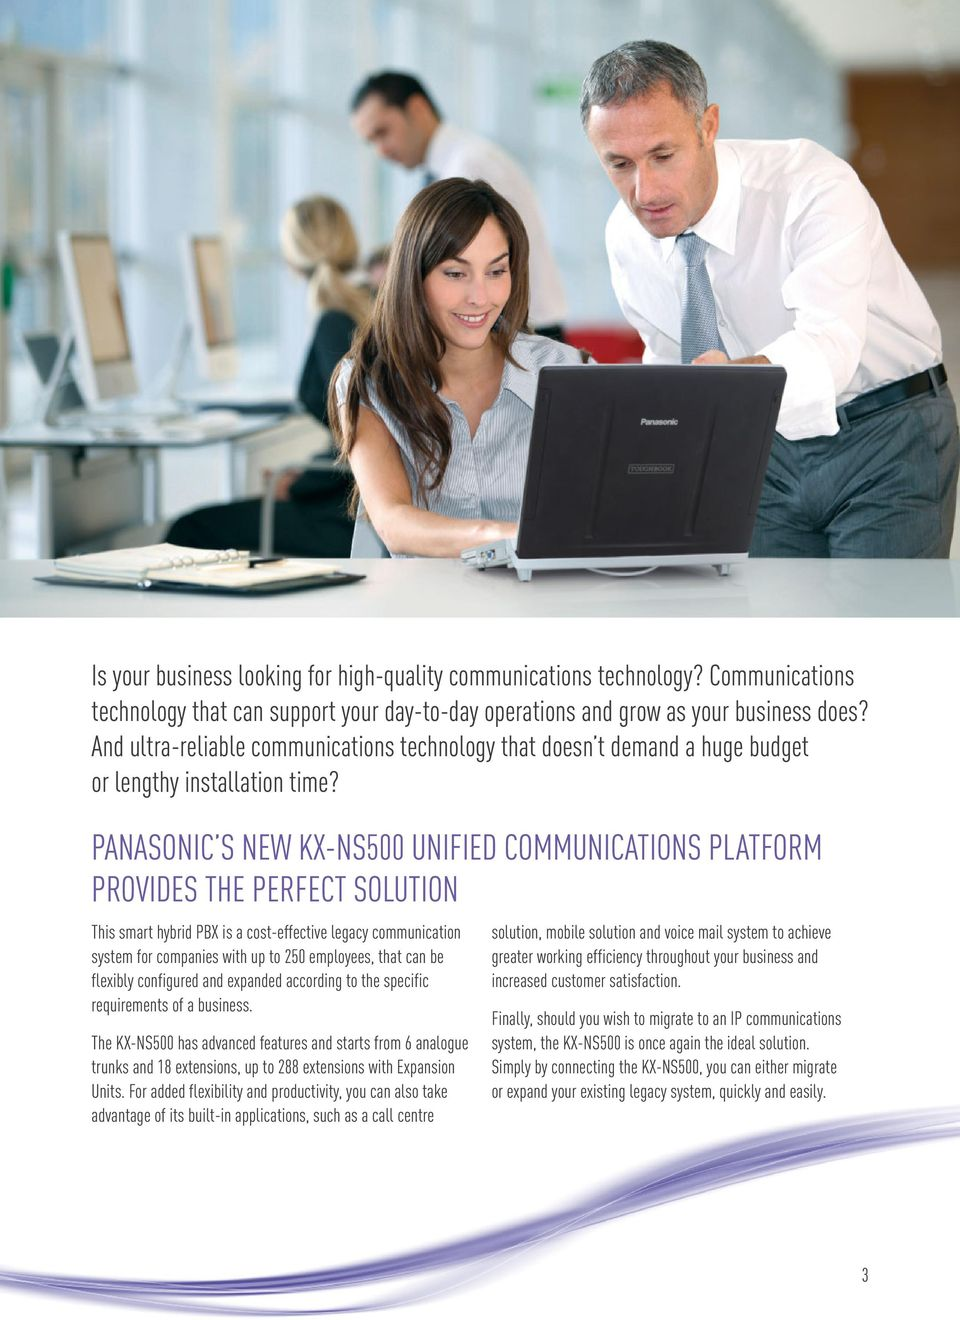 PANASONIC S NEW KX-NS500 UNIFIED COMMUNICATIONS PLATFORM PROVIDES THE PERFECT SOLUTION This smart hybrid PBX is a cost-effective legacy communication system for companies with up to 250 employees,